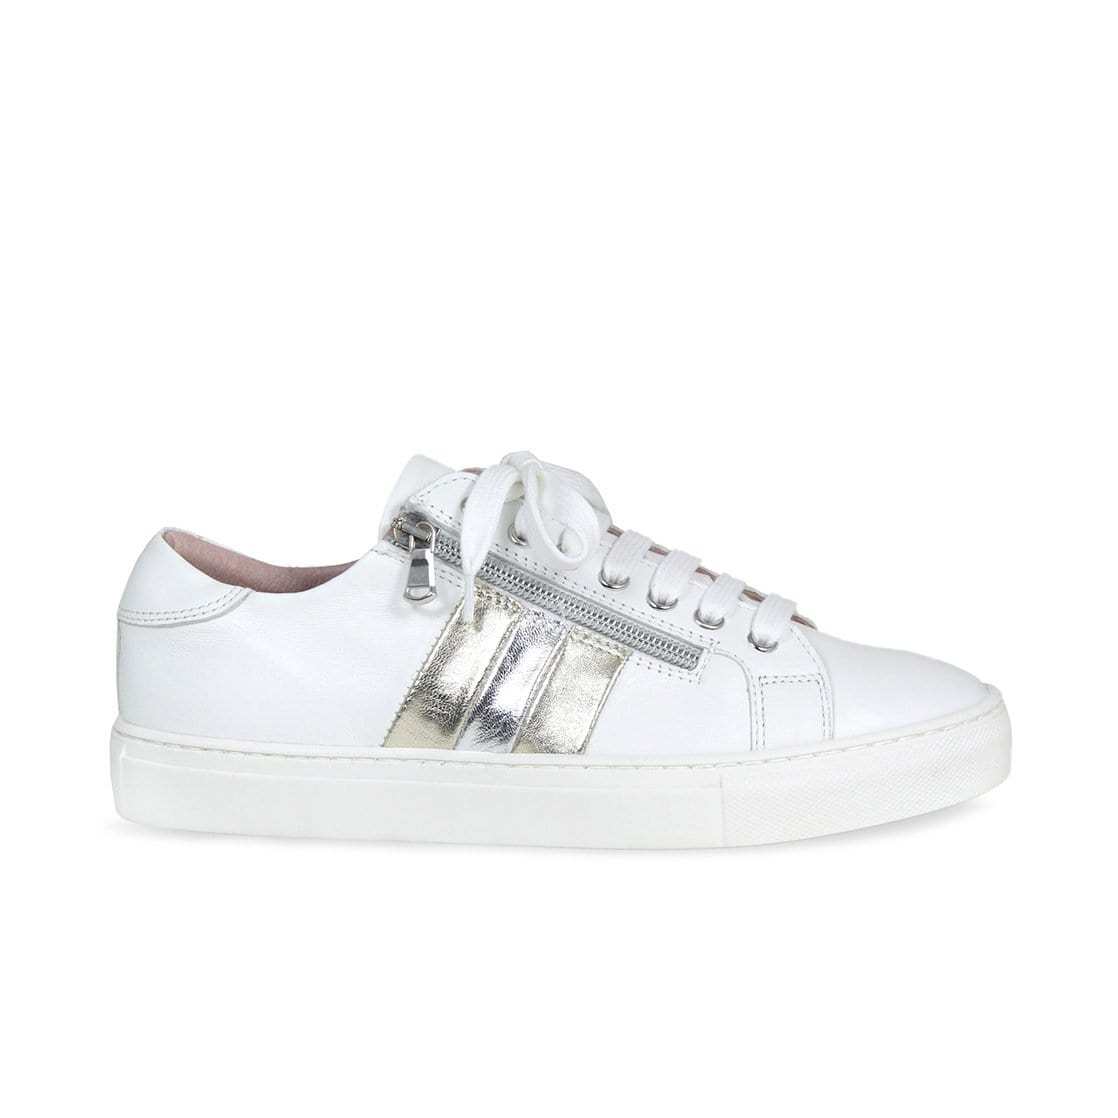 Sprint: White & Metallic Leather